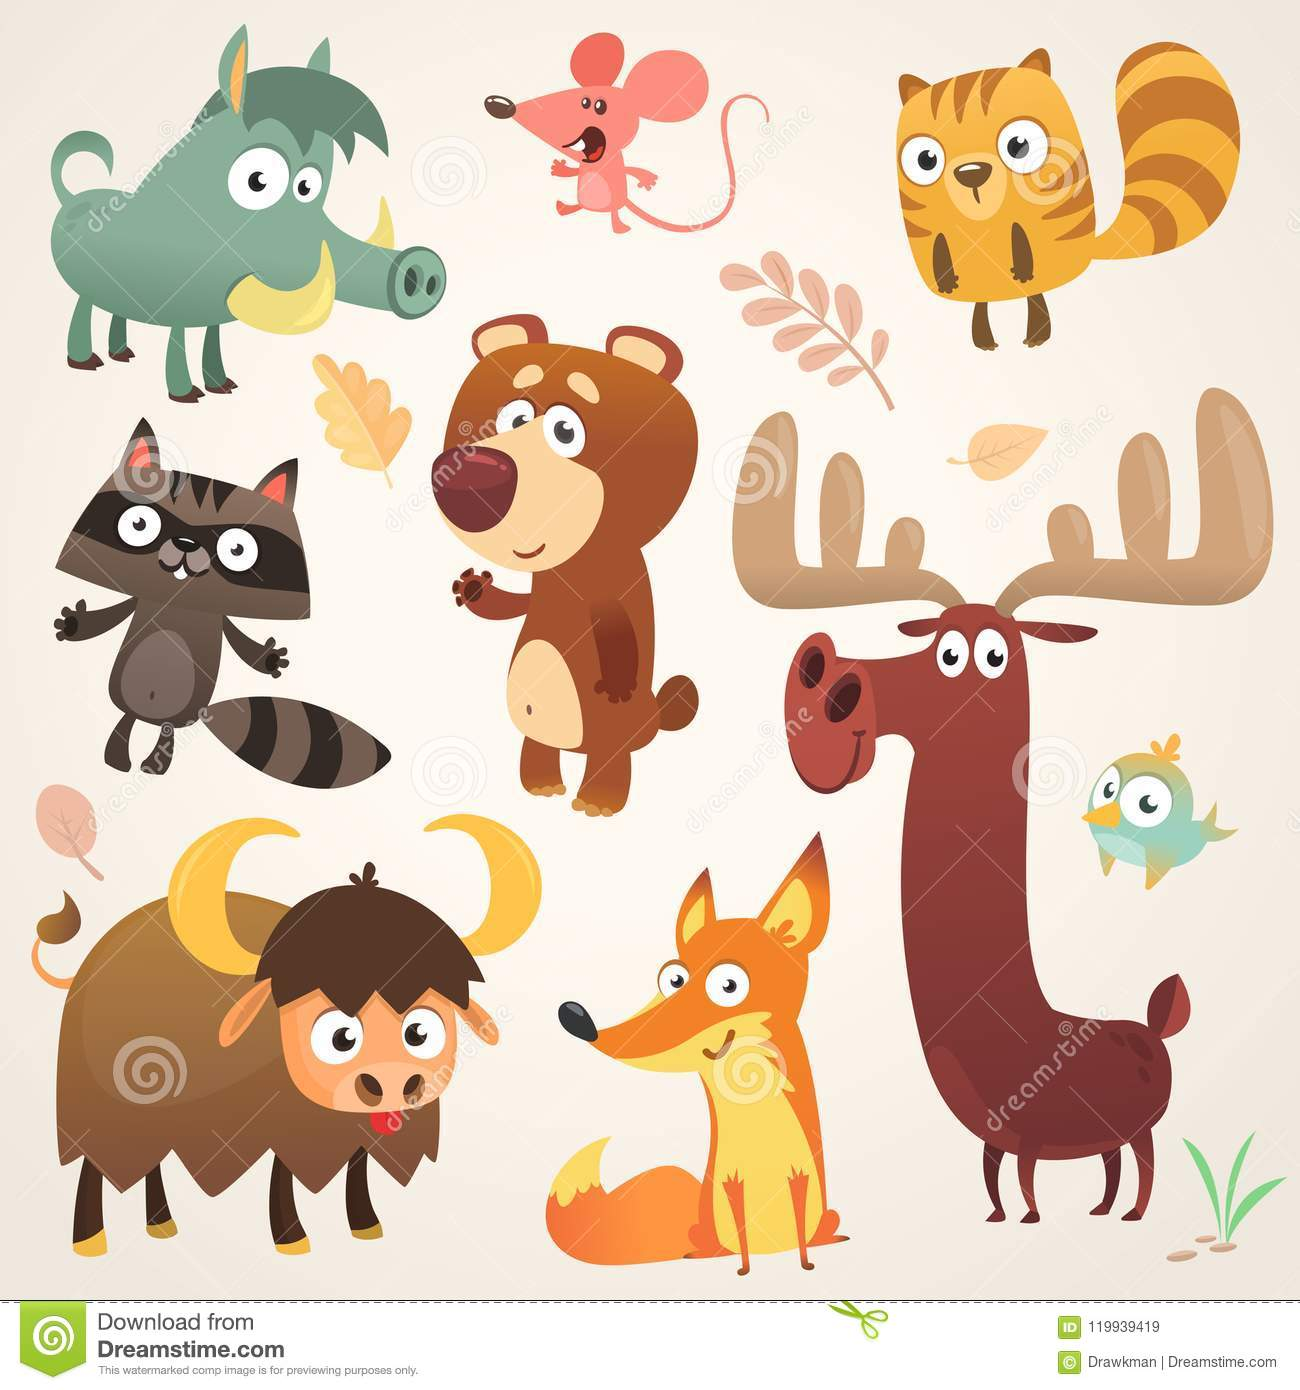 Cartoon forest animal characters. Vector illustration. Big set of cartoon forest animals illustration